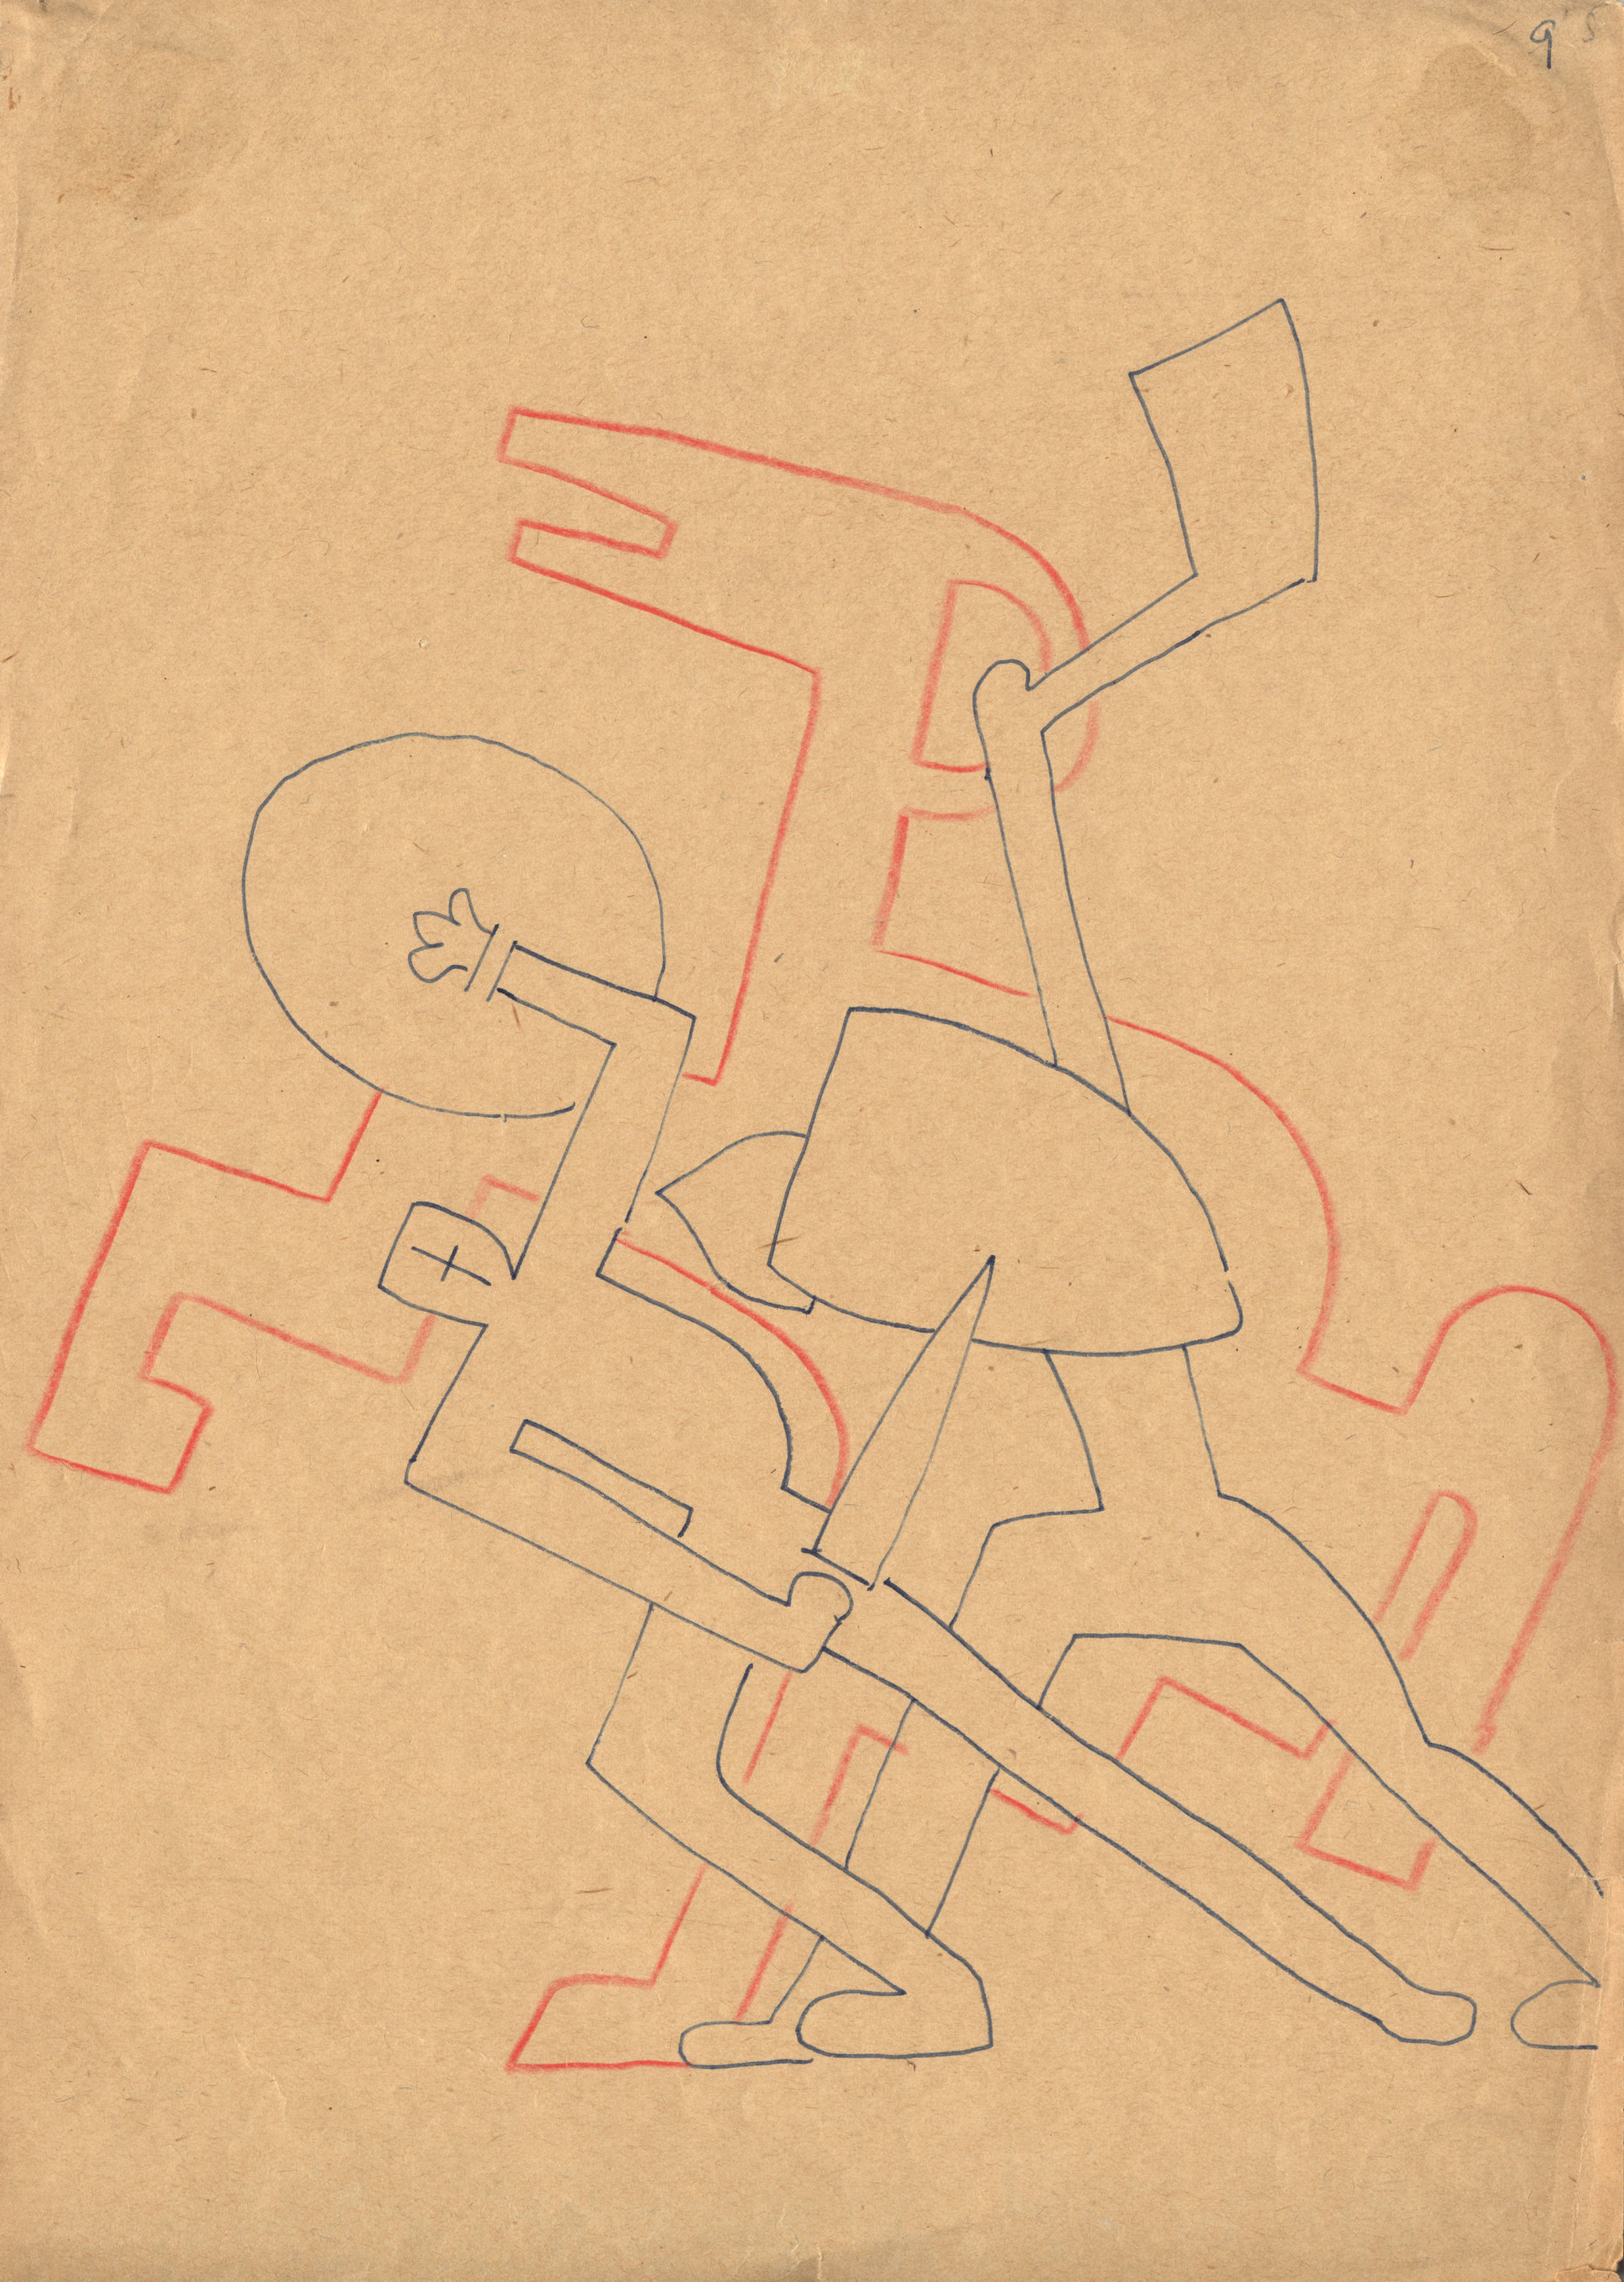 Sergei Eisenstein, Thoughts on Music, 1938, pencil on paper ©Russian State Archive of Literature and Art, Moscow